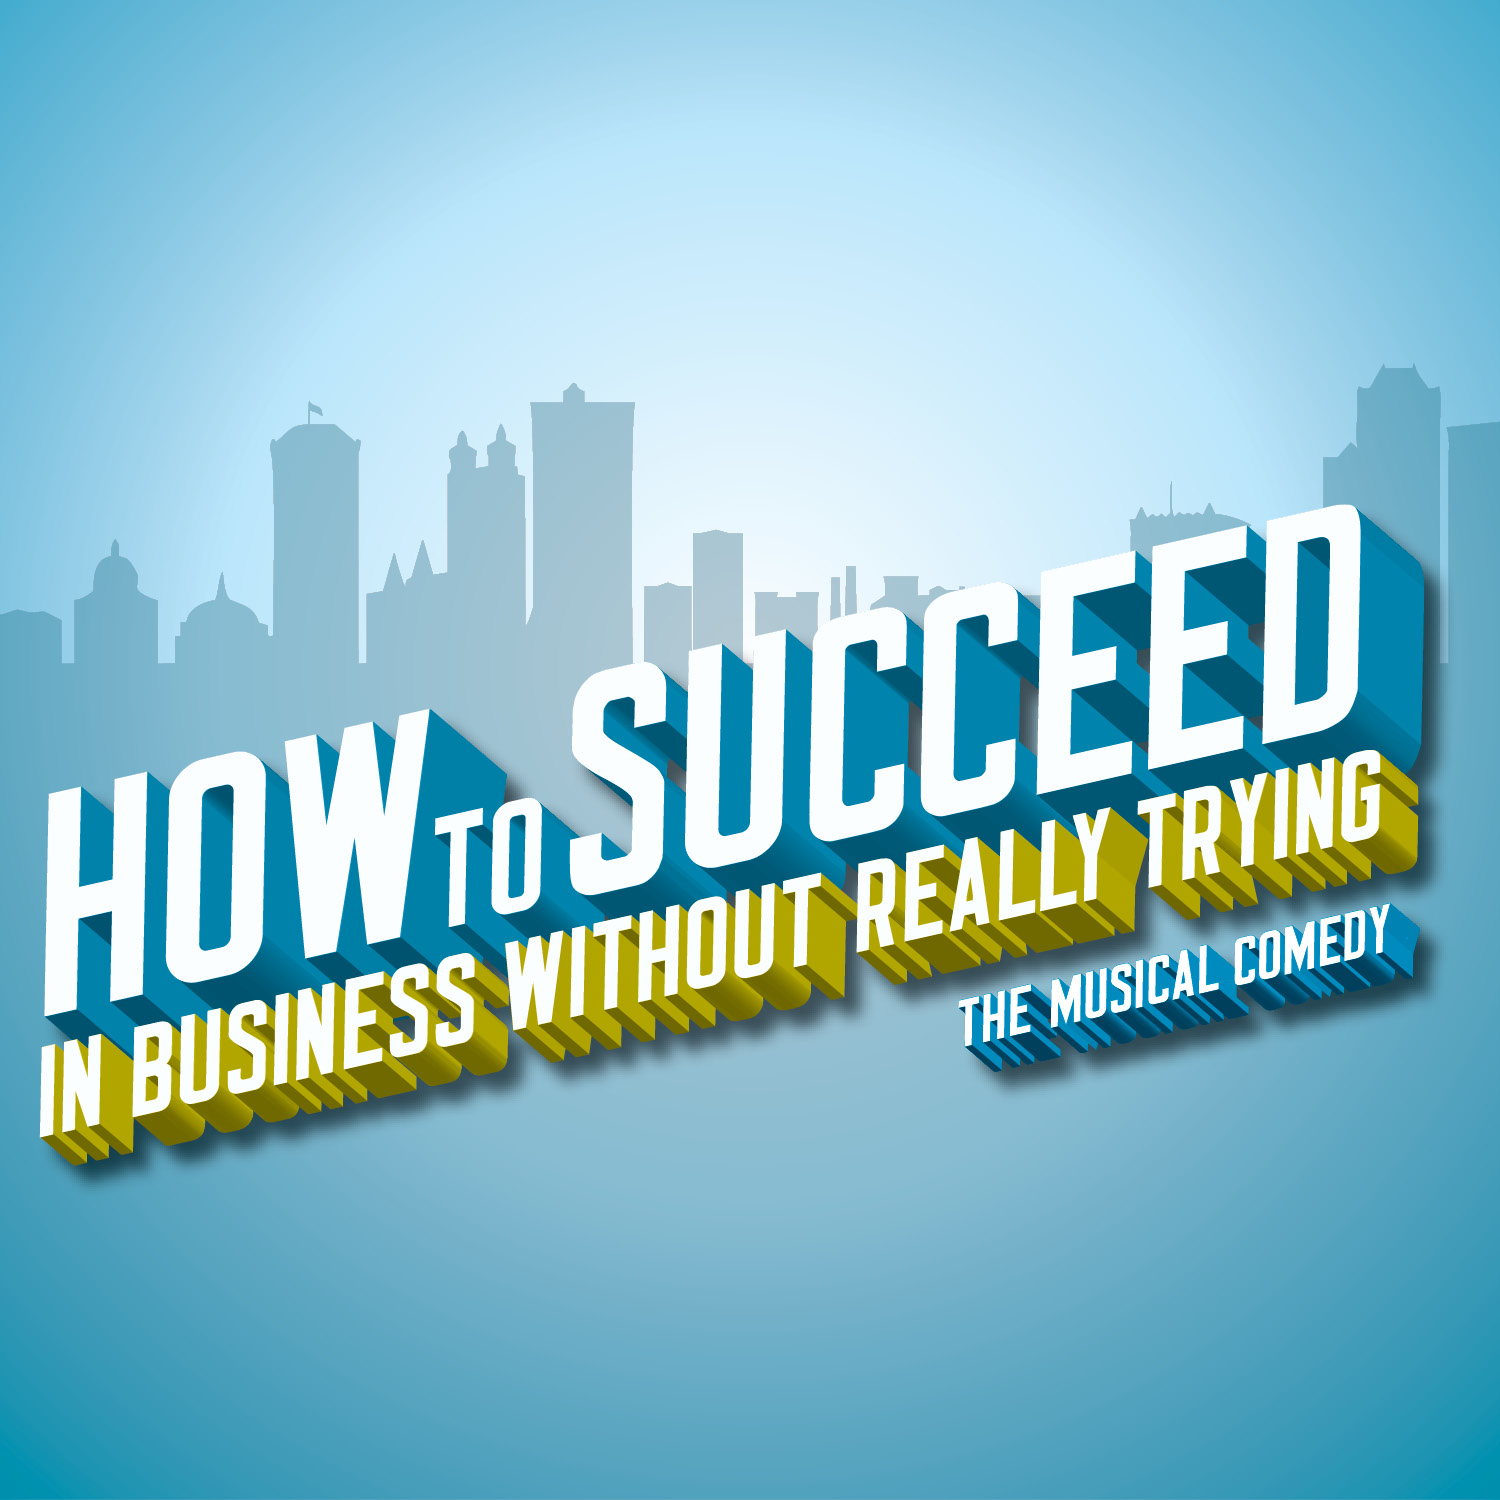 How to Succeed in Business? Do Less